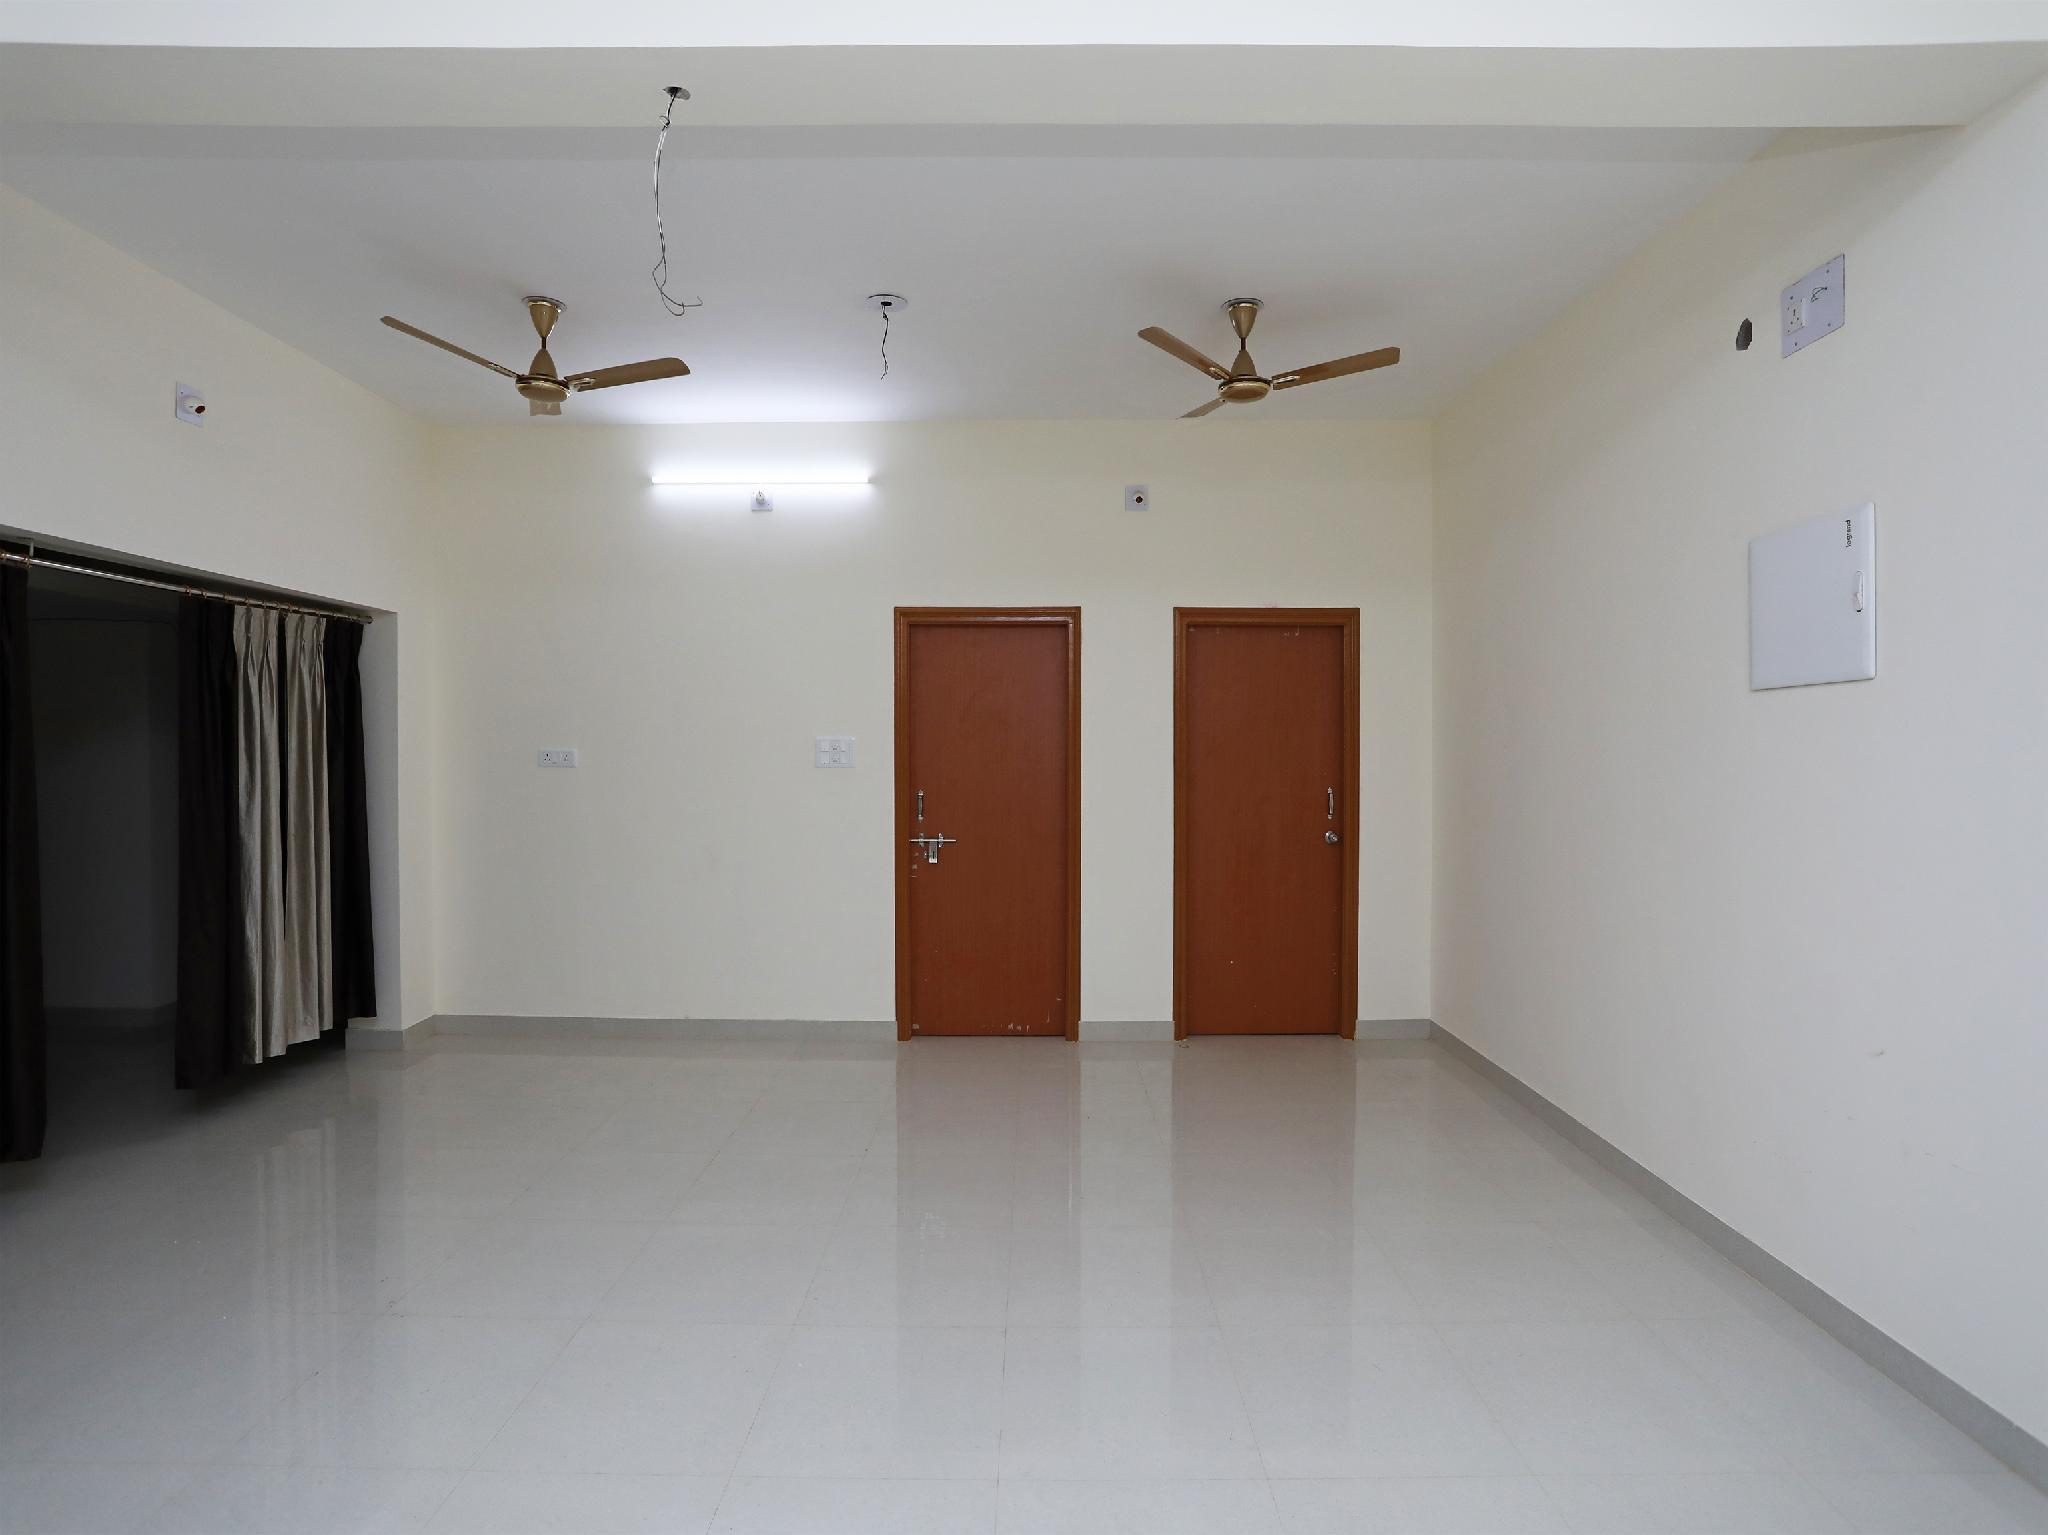 OYO 15204 Sai Corporate Inn, Cuttack